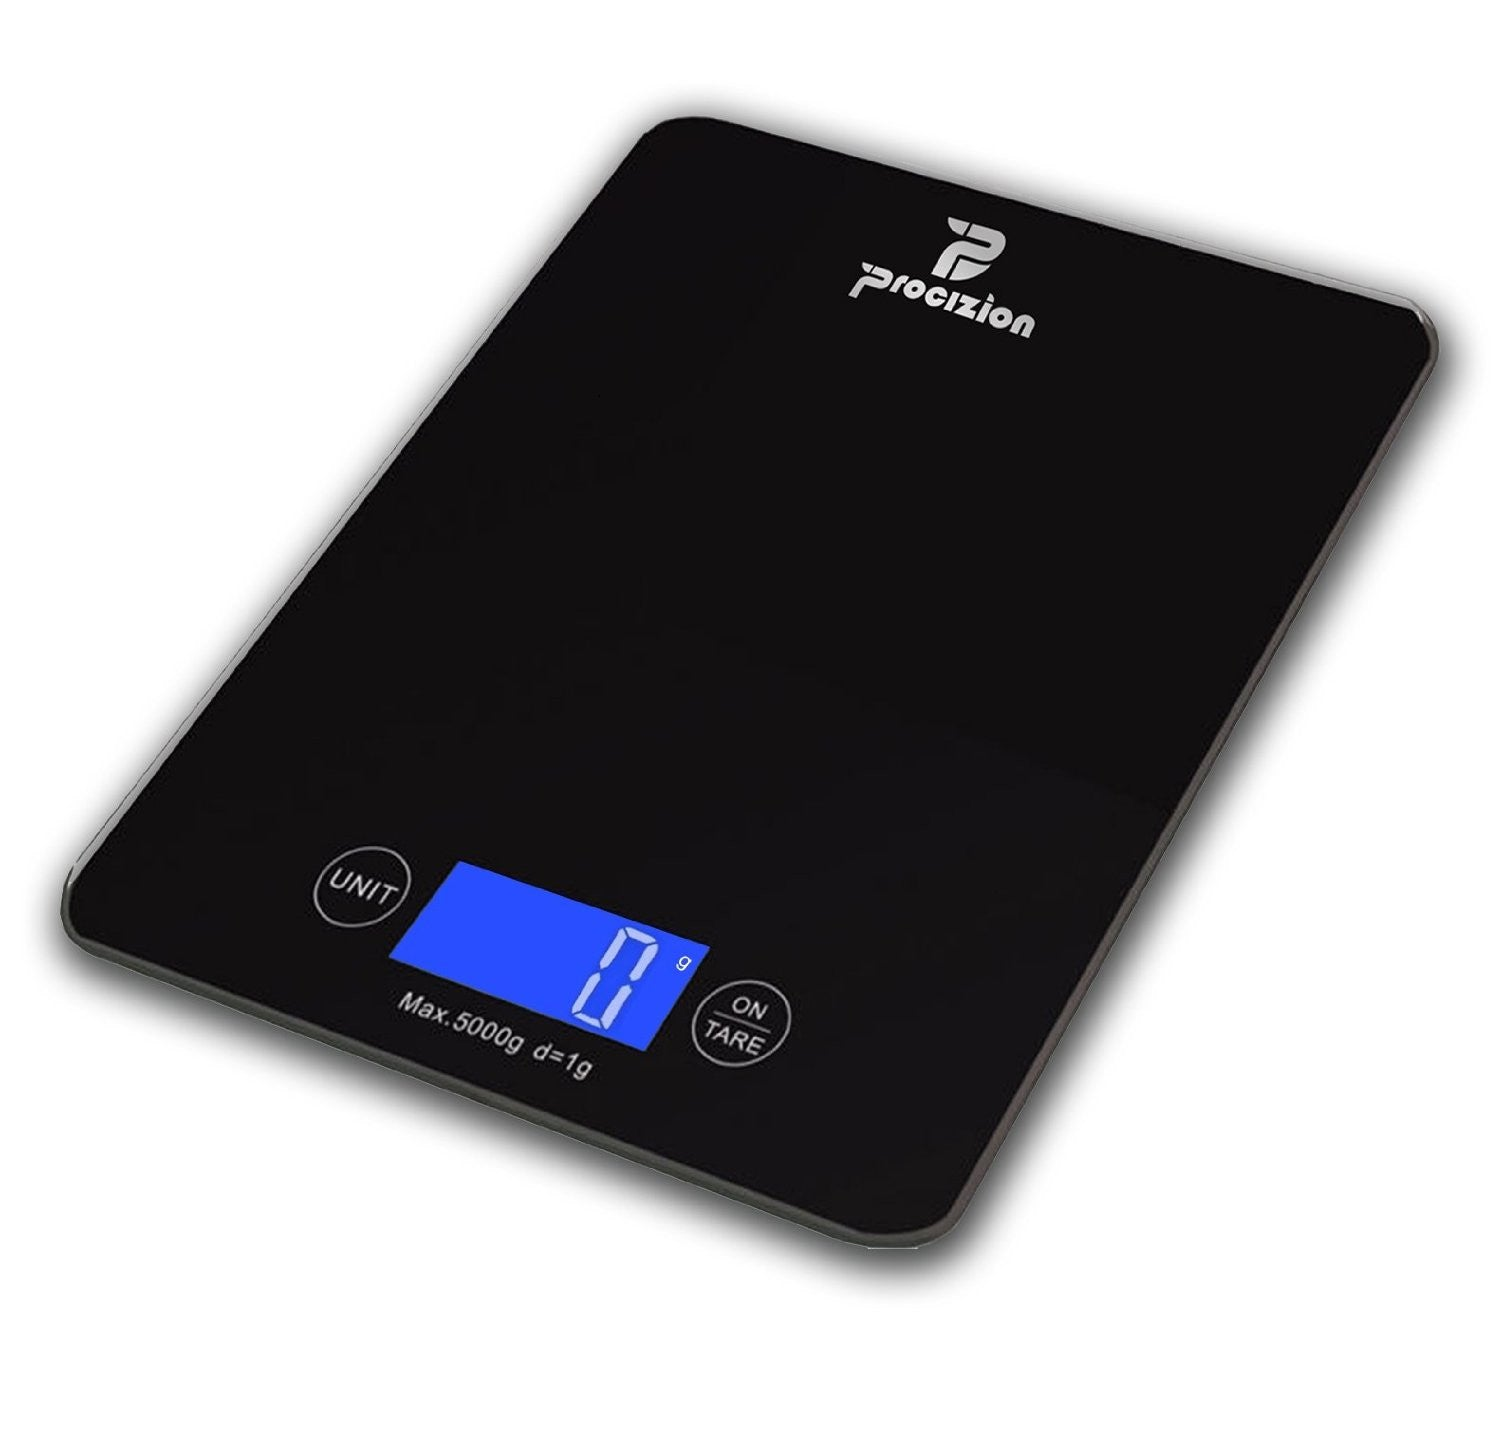 Procizion Digital Kitchen Scale Review by Josh Haskell